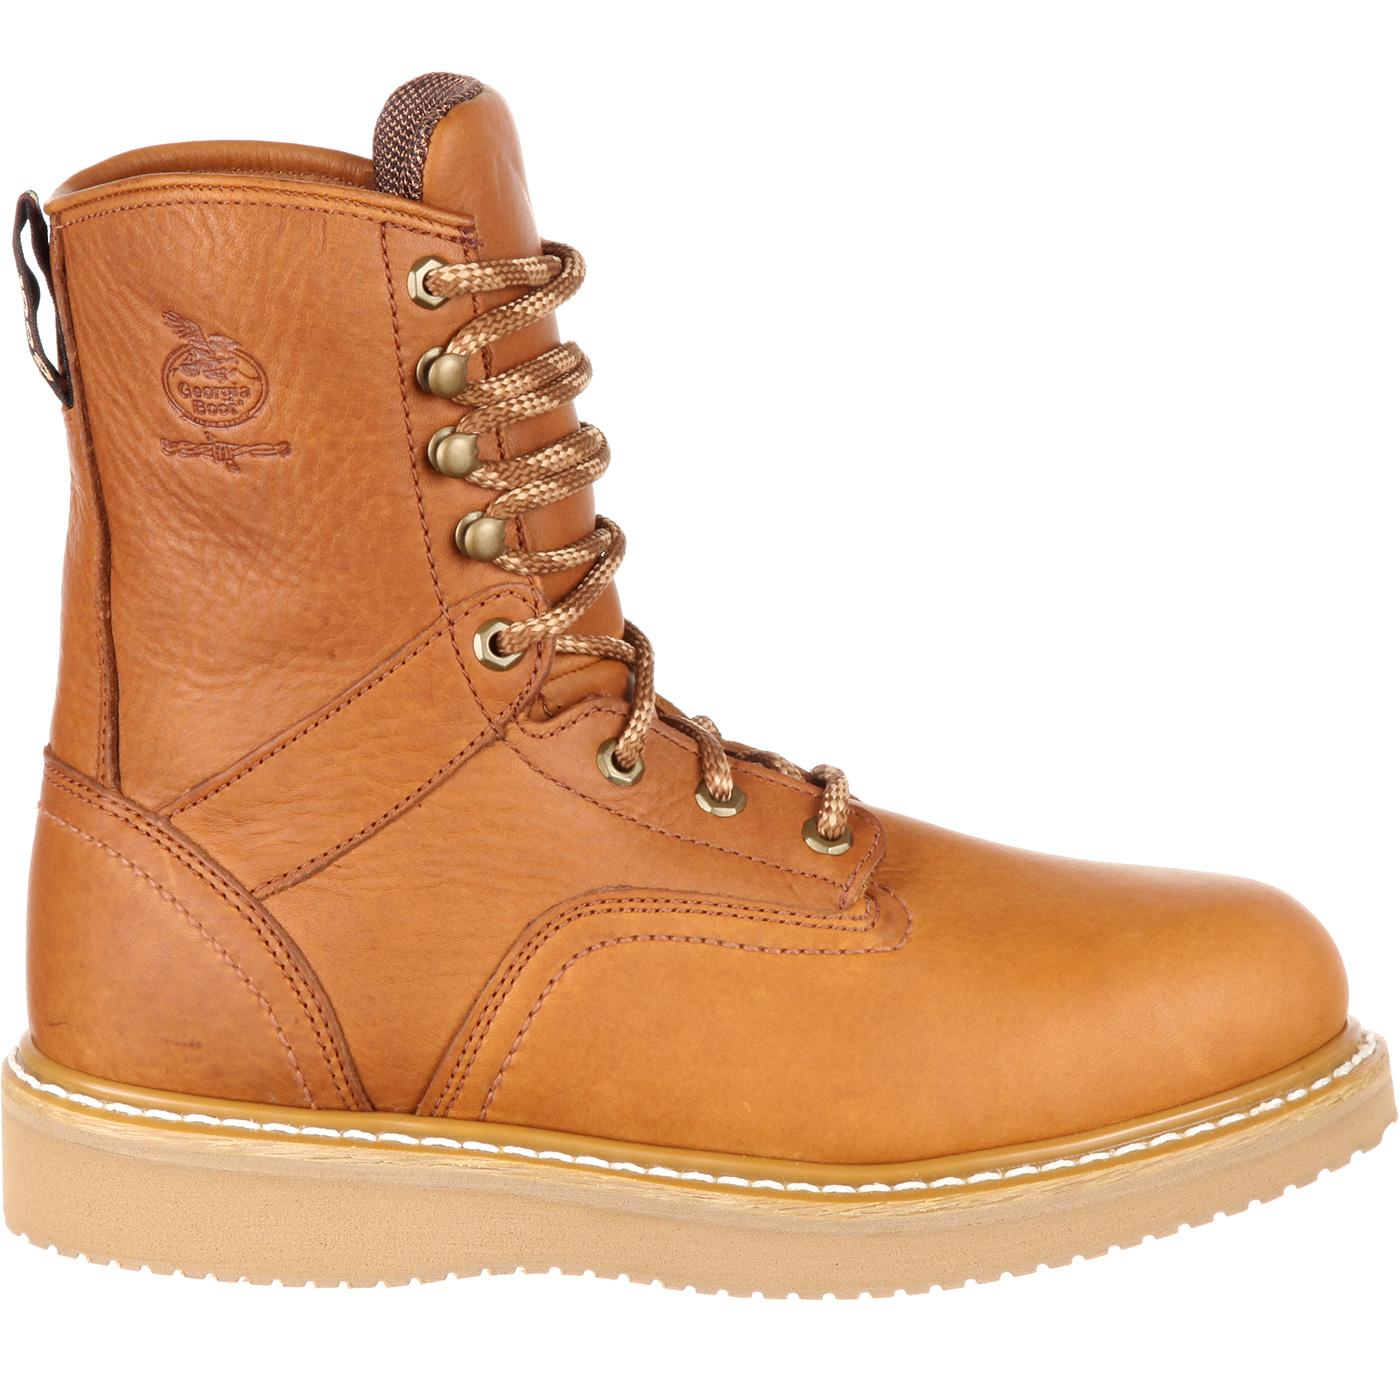 Take a look at our 5 GeorgiaBoot coupon codes including 2 coupon codes, and 3 sales. Most popular now: Save Up to 40% Off Sale Items. Latest offer: 20% Off + Free Shipping.